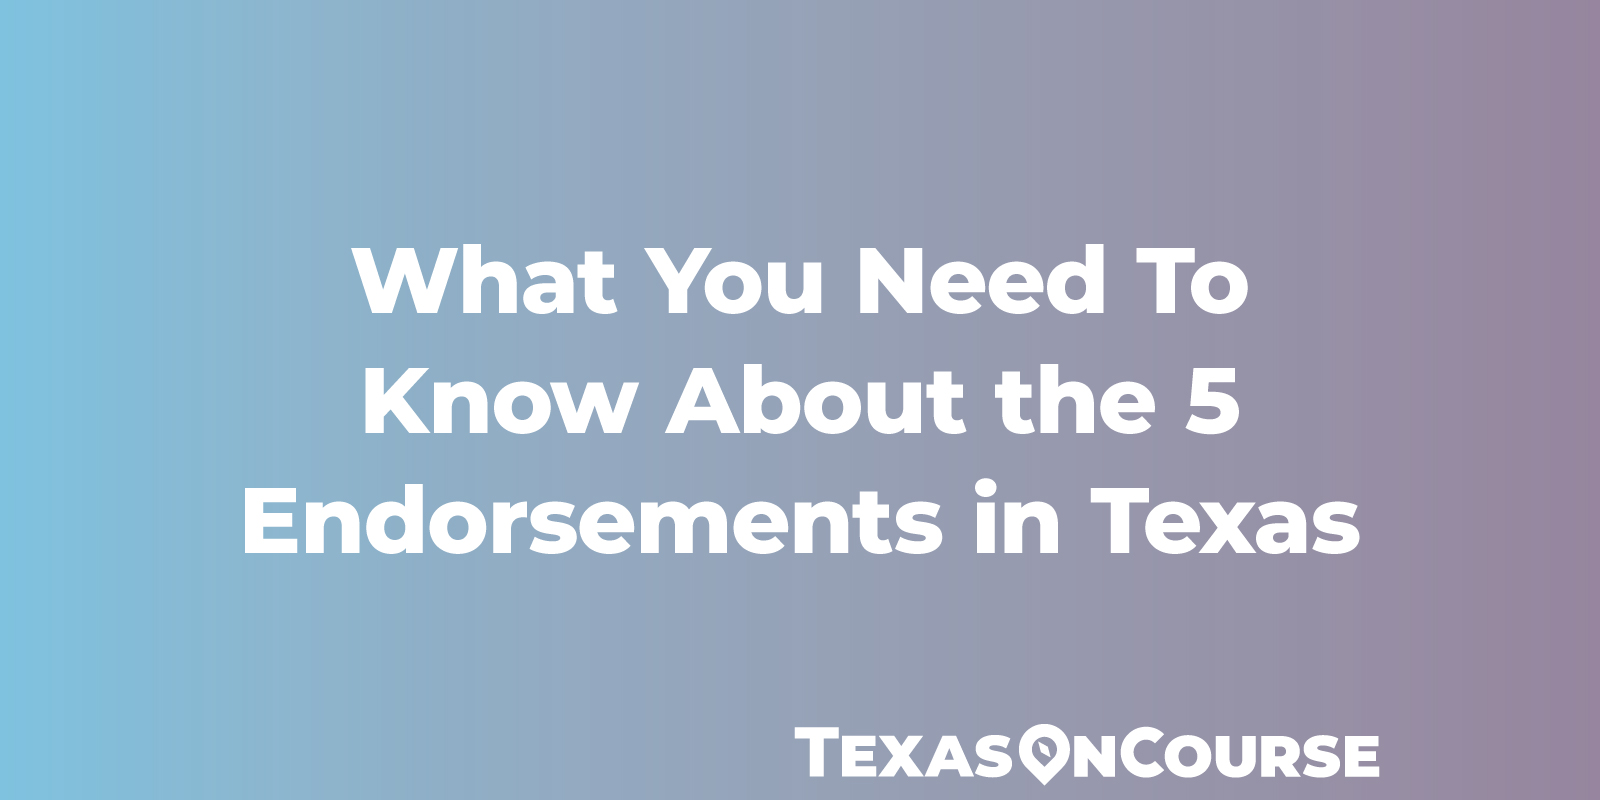 What You Need To Know About the 5 Endorsements in Texas